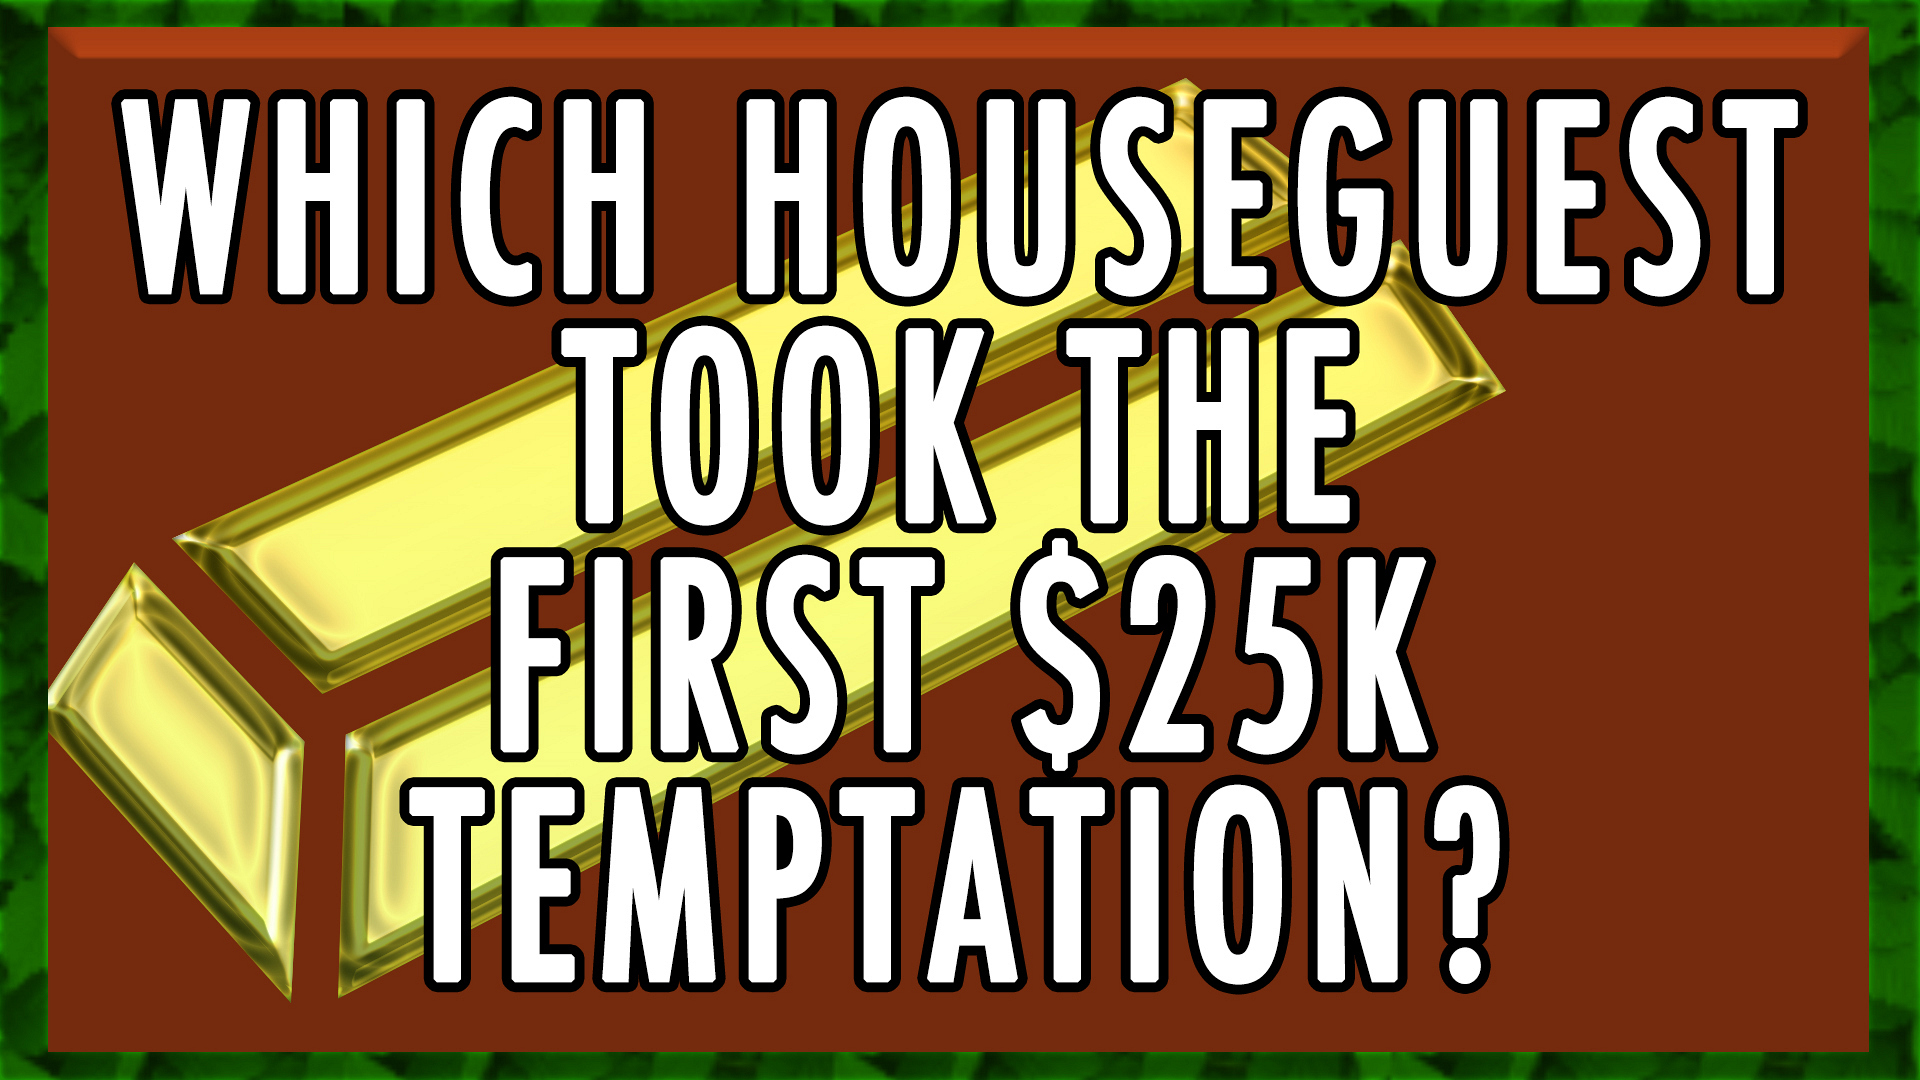 Who went for the $25k temptation?